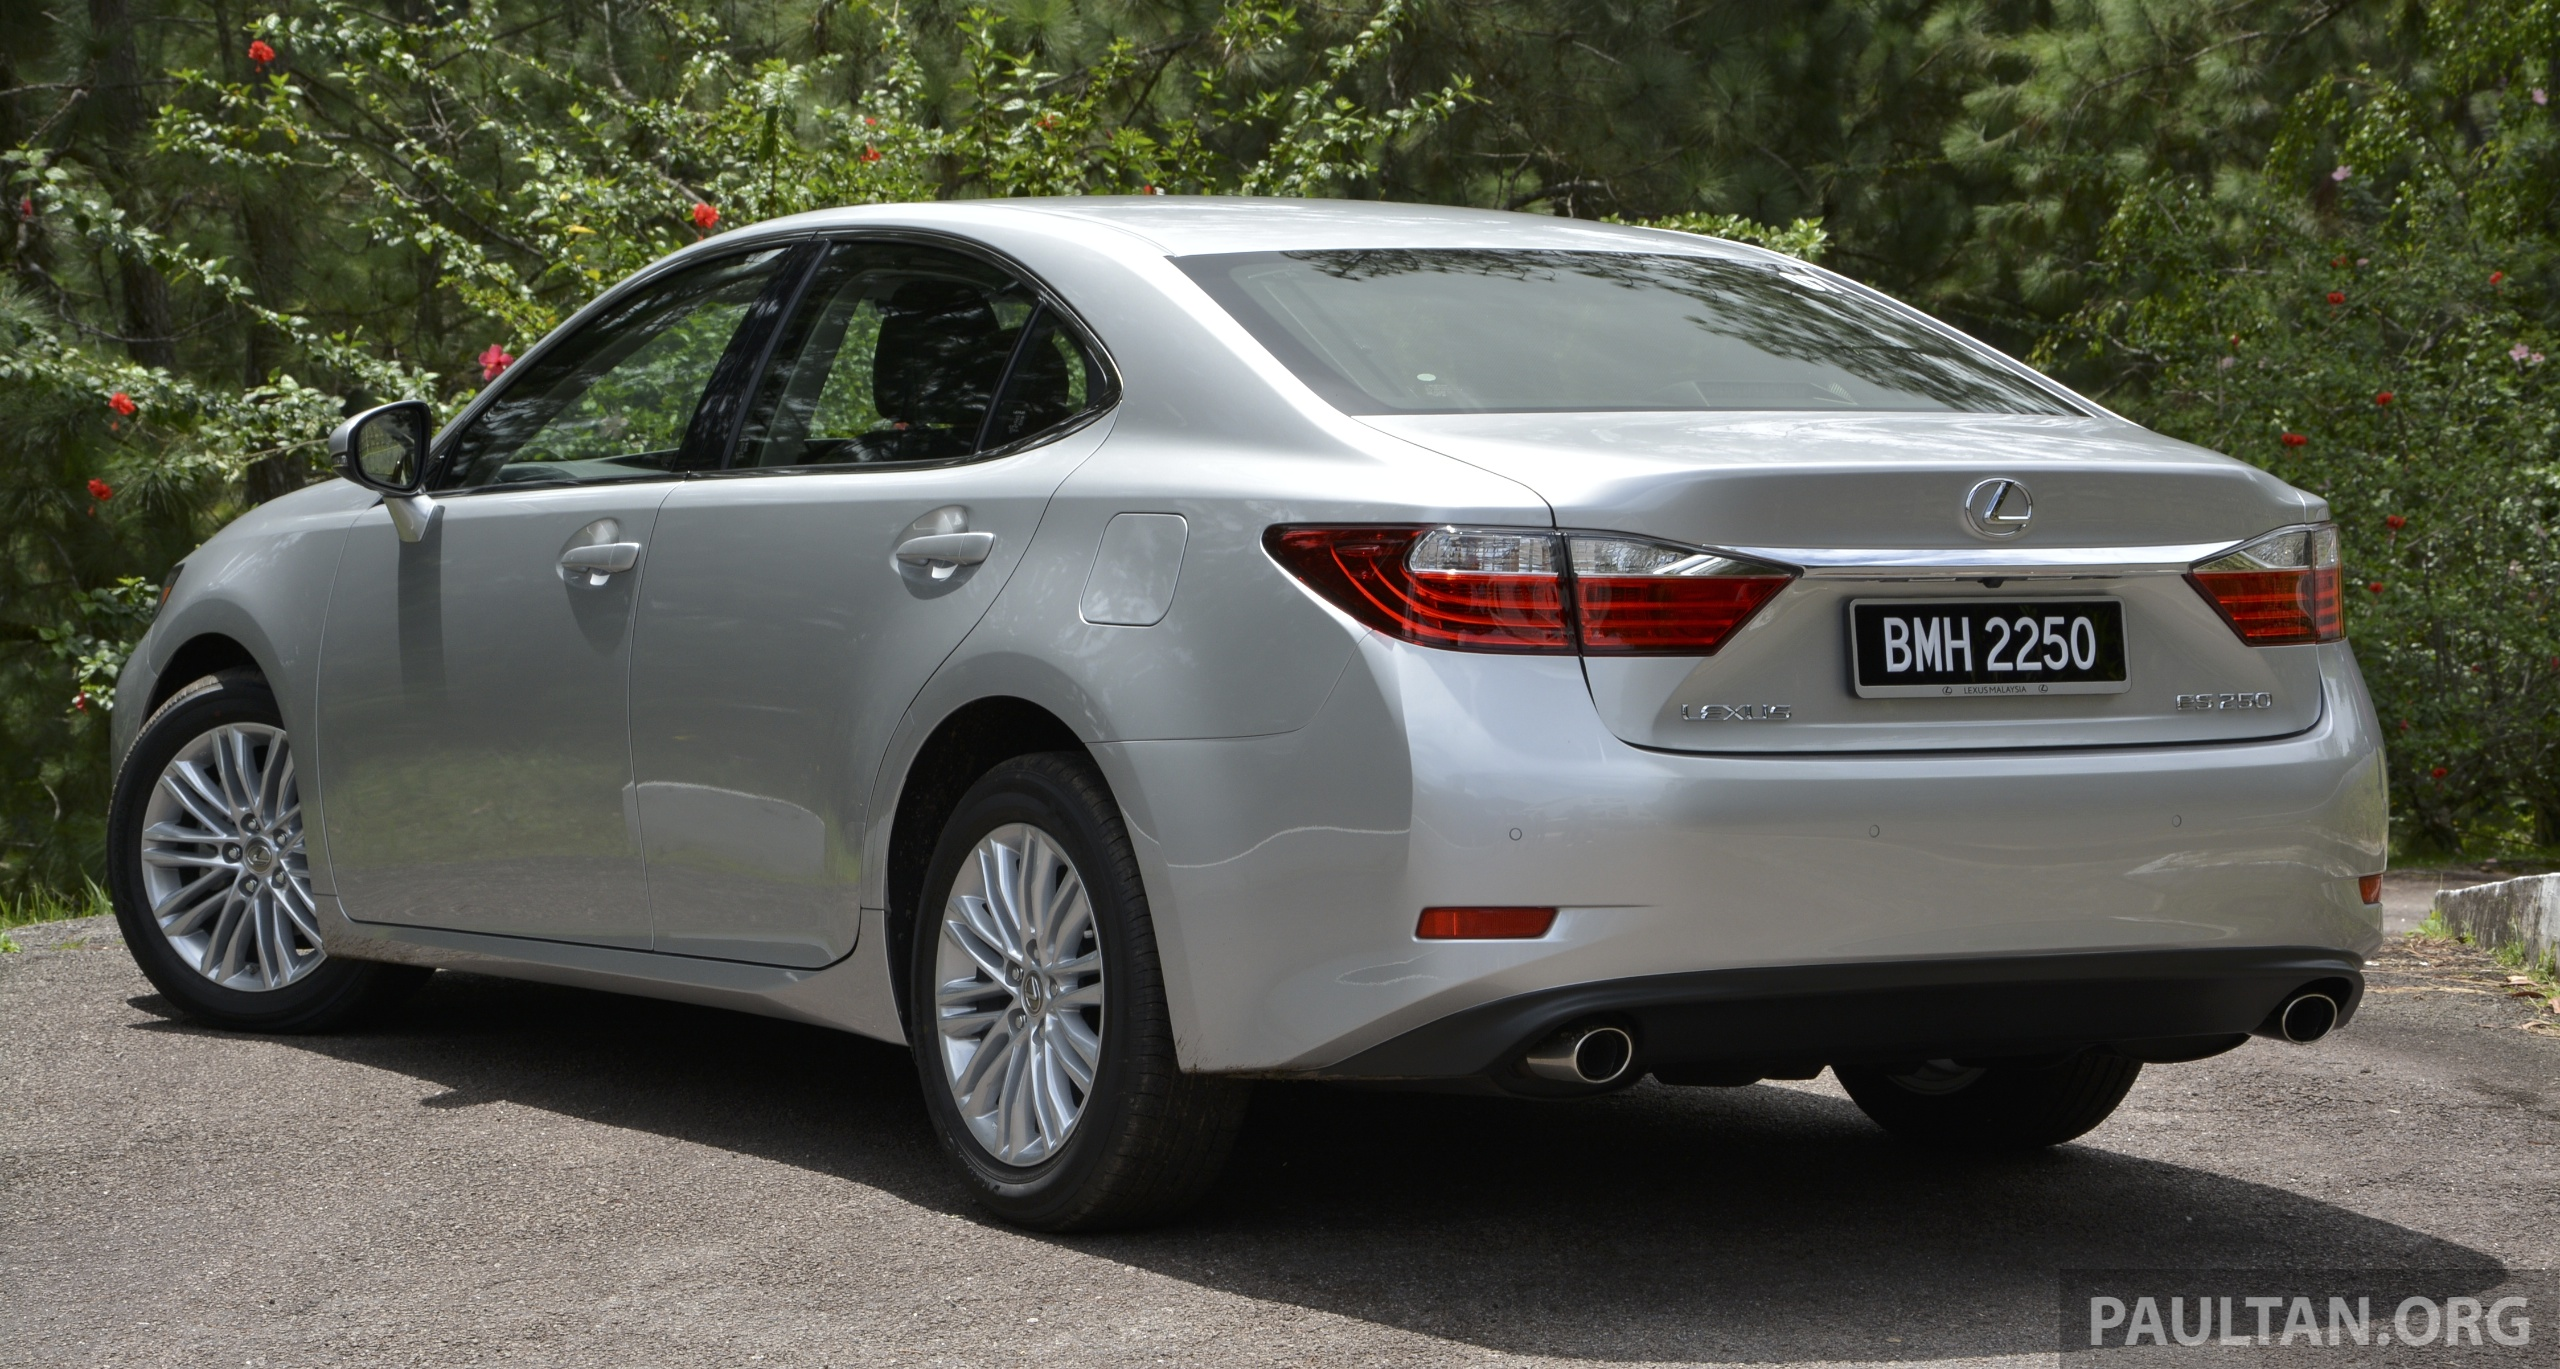 Driven 2013 Lexus Es 250 And 300h Sampled Image 219458